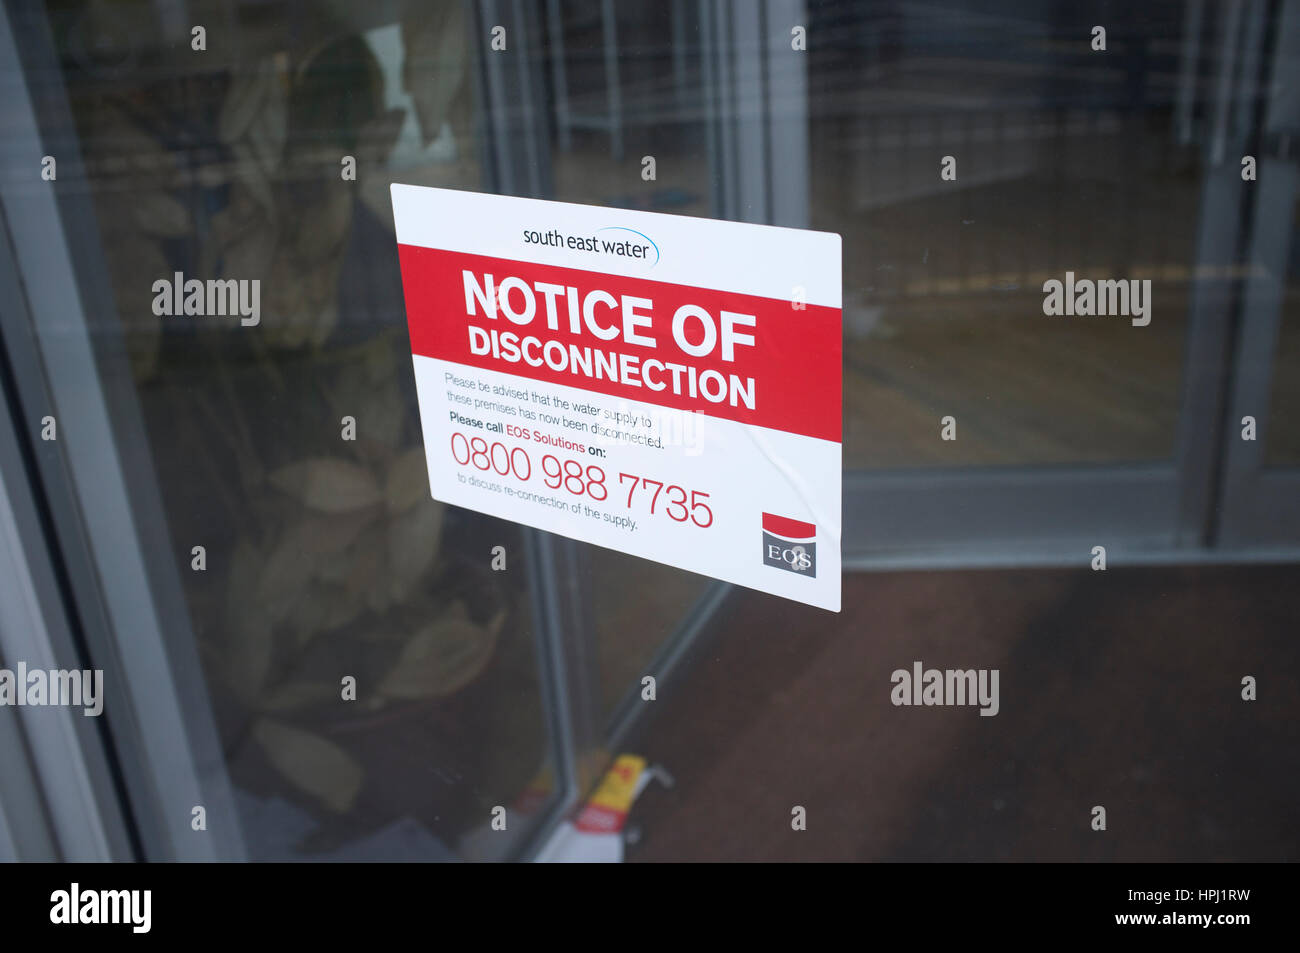 Notice of disconnection of water supply from South East Water affixed to a property - Stock Image